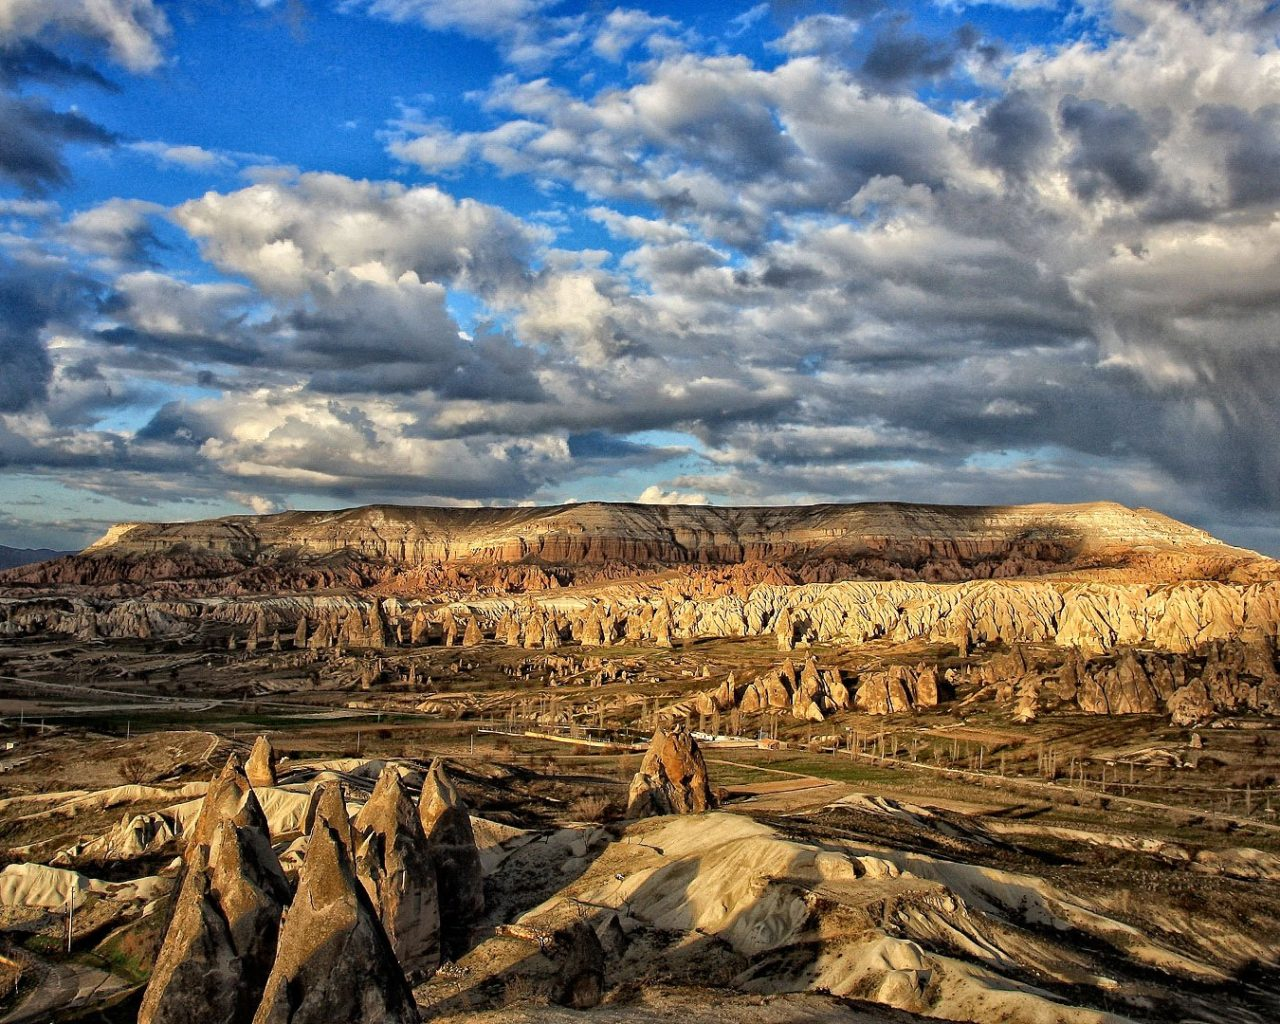 Winter Wallpaper For Iphone 4 Landscape Historic Settlement Ancient Persian Kingdom In